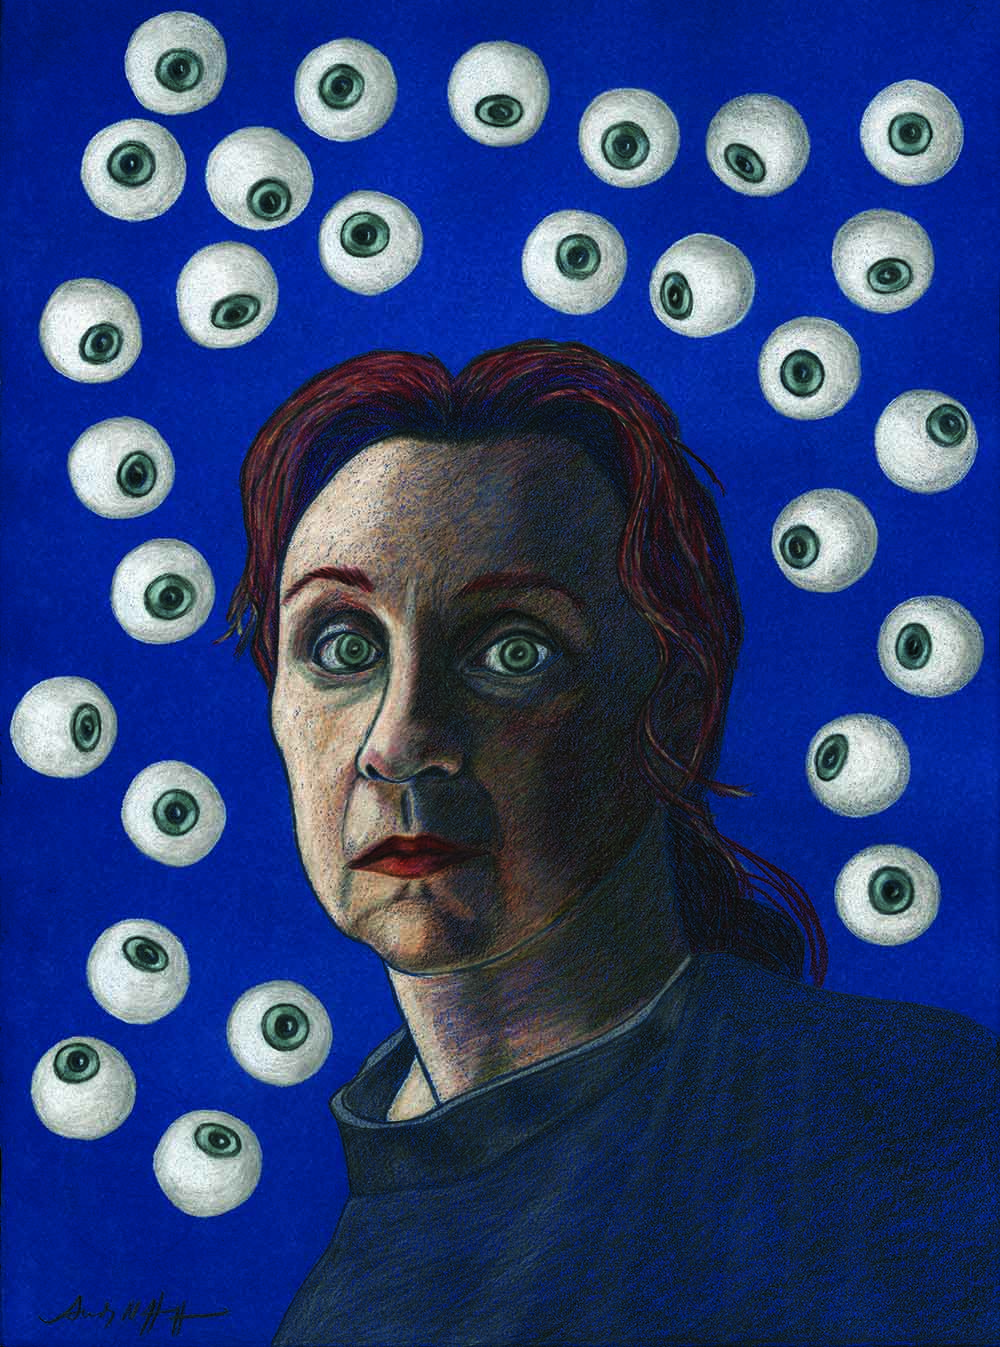 A surreal portrait shows a light-skinned woman with blazing red hair, piercing grey eyes, and red lips. Set against a vibrant blue background, the woman gazes pointedly at the viewer, surrounded by 28 floating eyeballs.